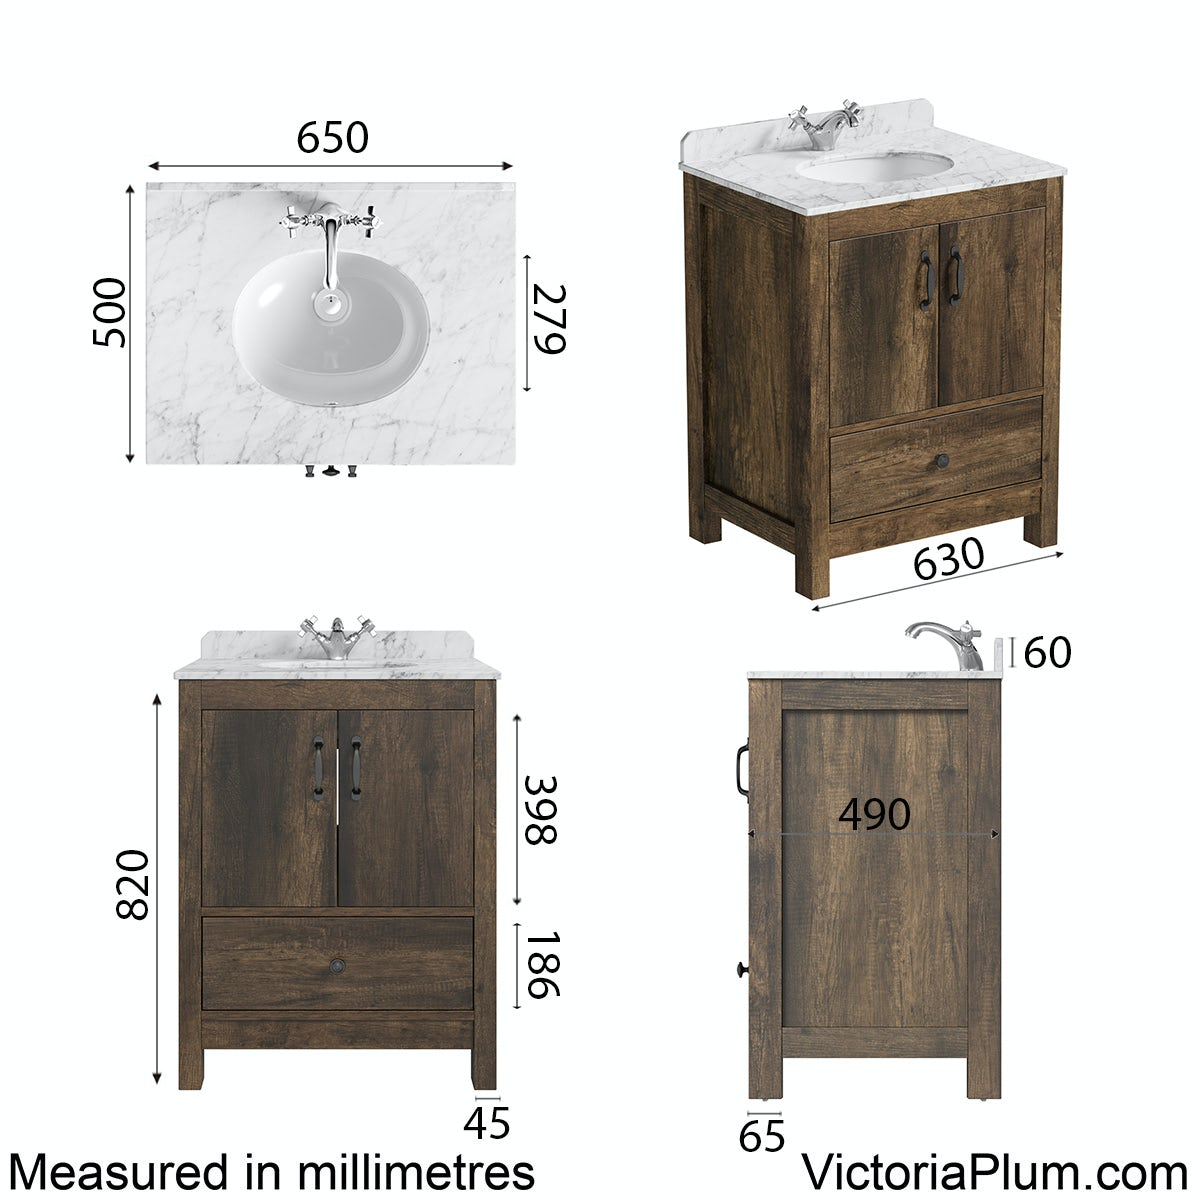 Dimensions for The Bath Co. Dalston vanity unit and white marble basin 650mm